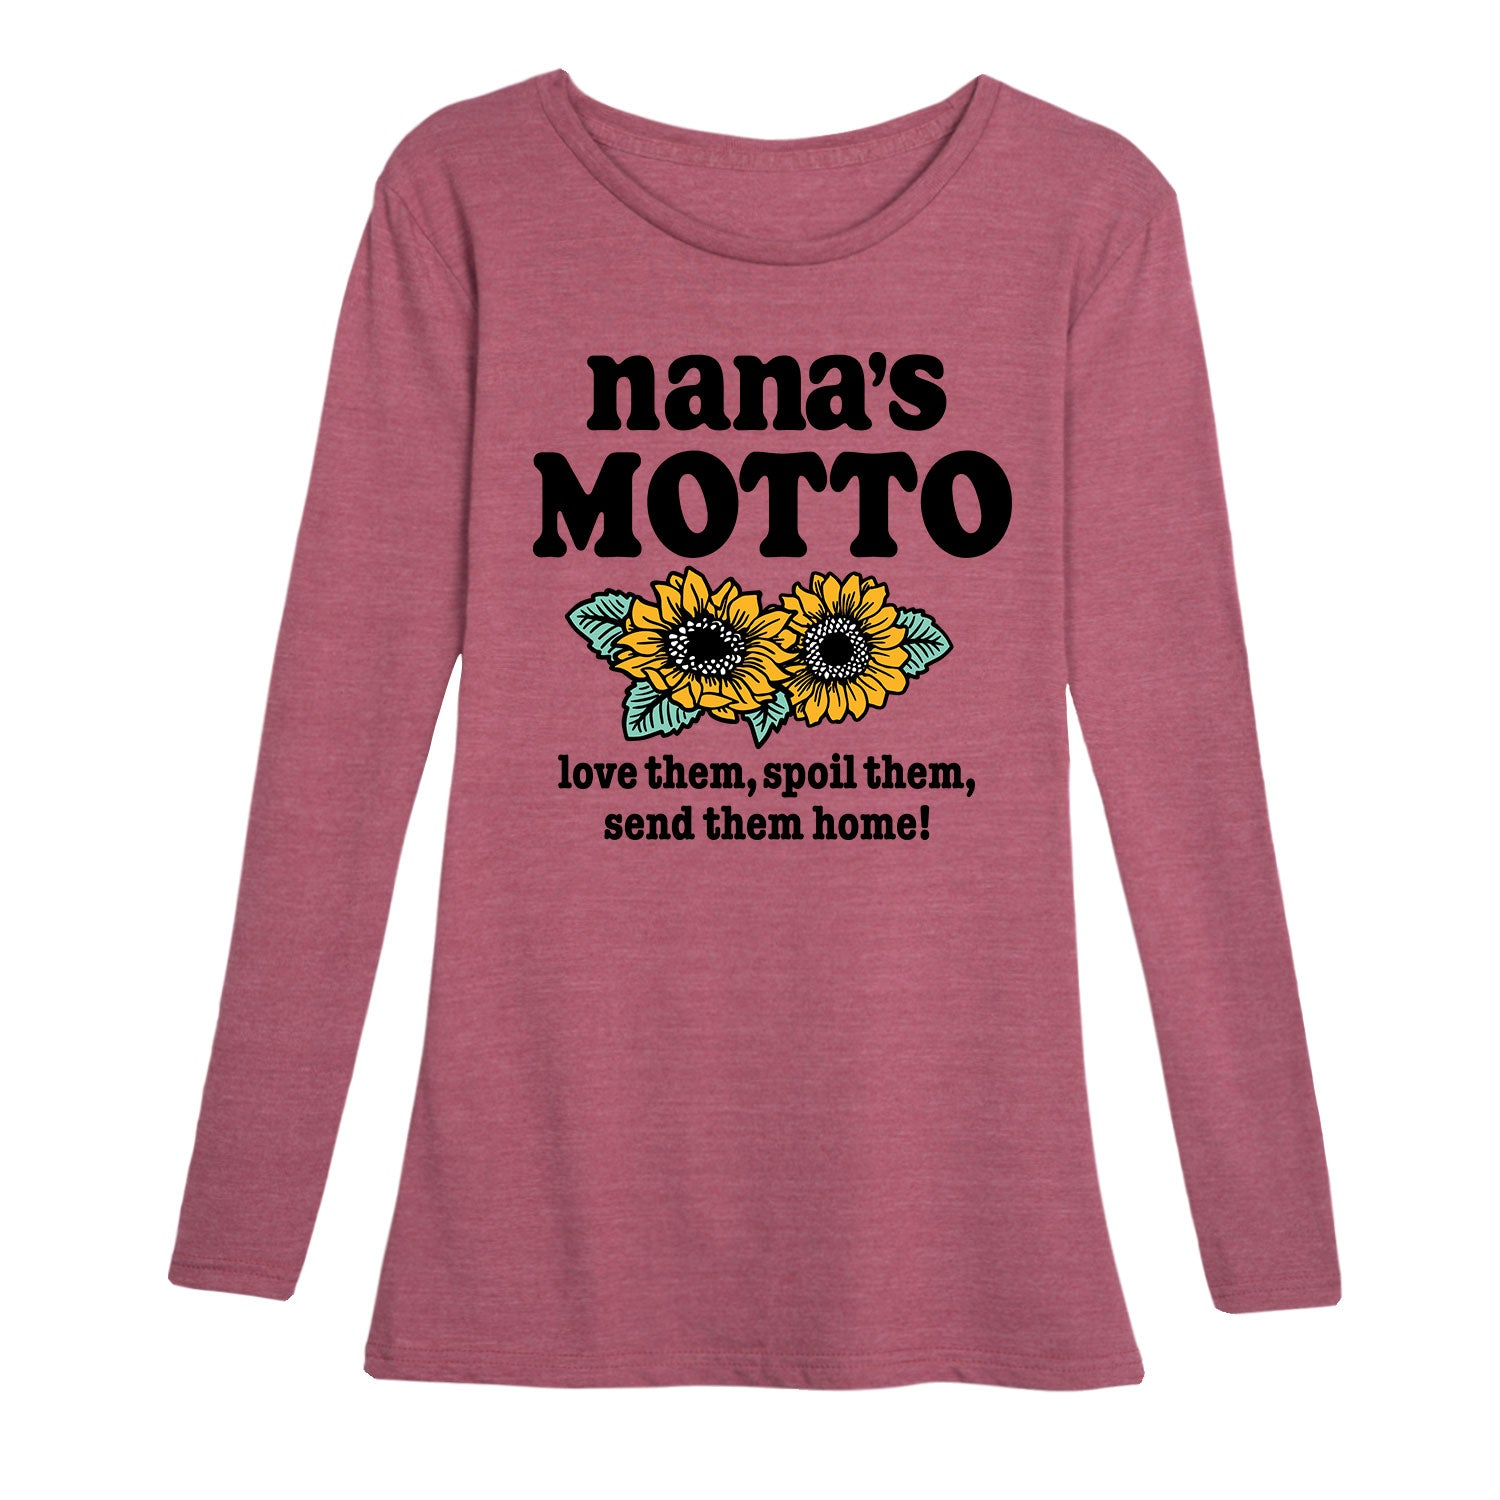 Nanas Motto - Women's Long Sleeve T-Shirt